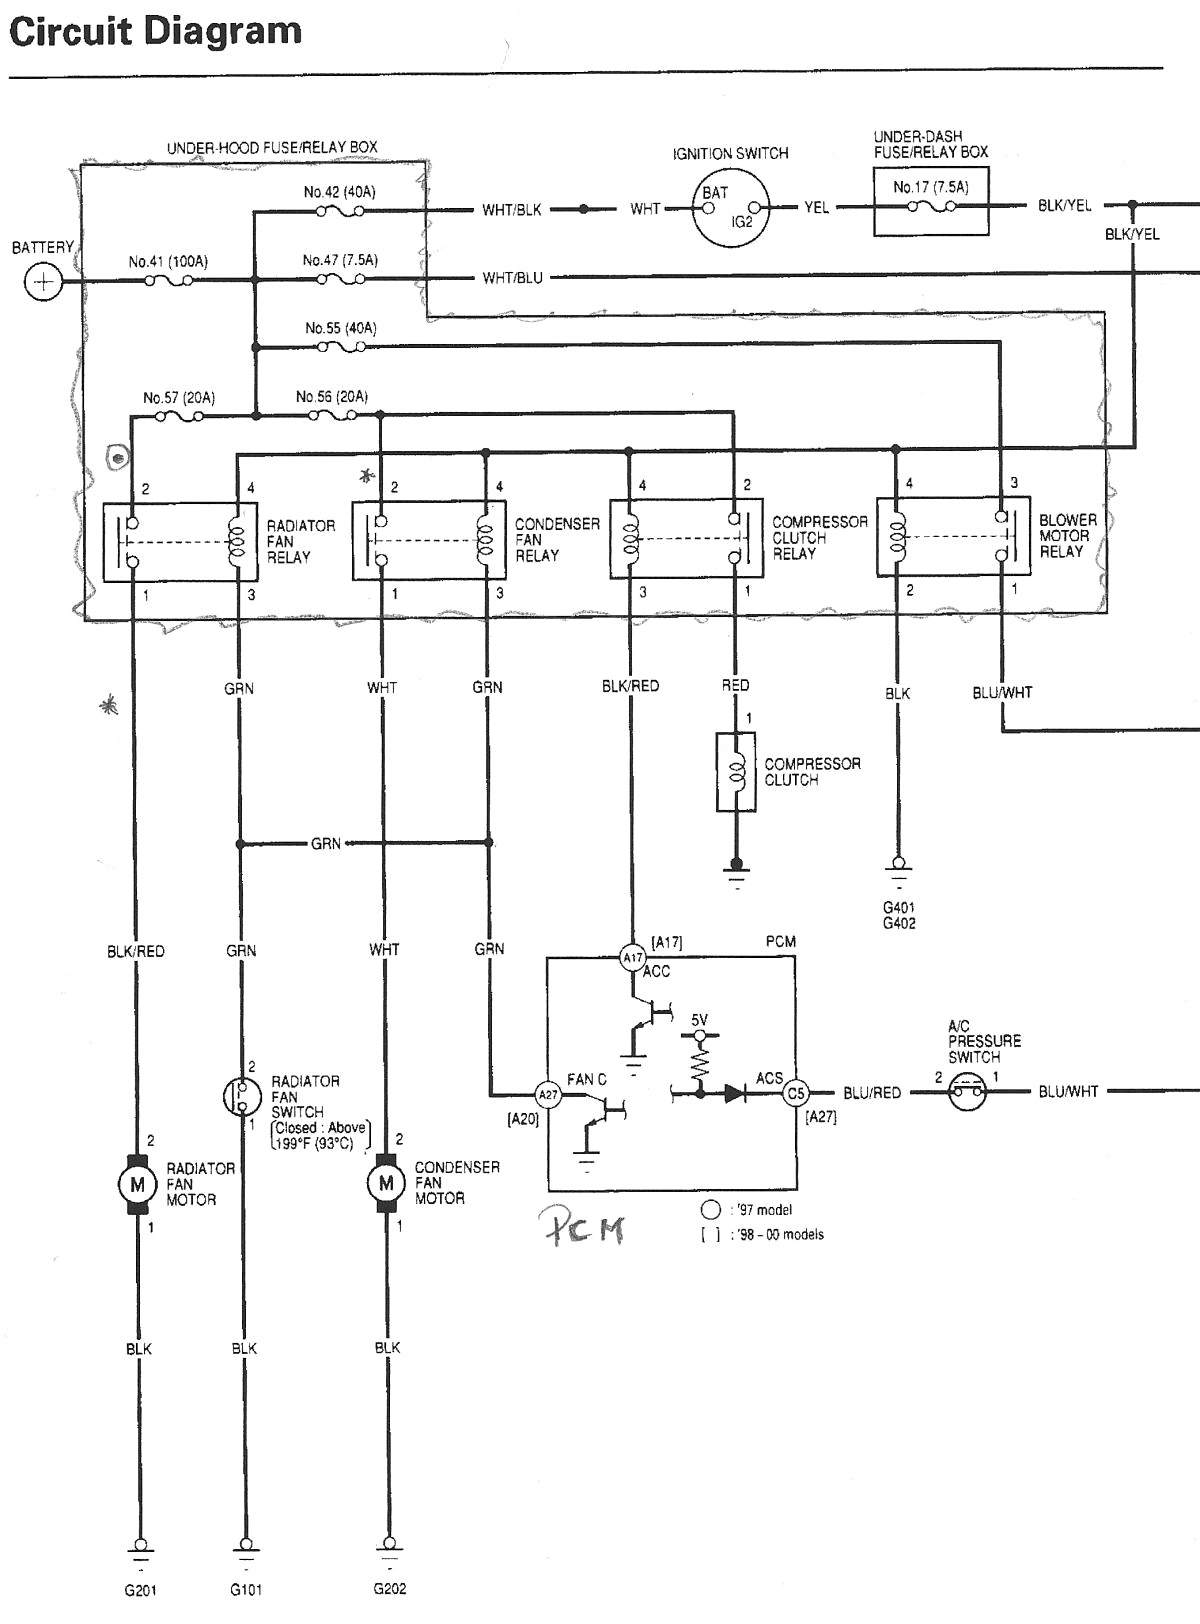 1997 Honda Accord Engine Diagram 2003 Honda Accord Stereo Wiring Diagram and Adorable Blurts Of 1997 Honda Accord Engine Diagram